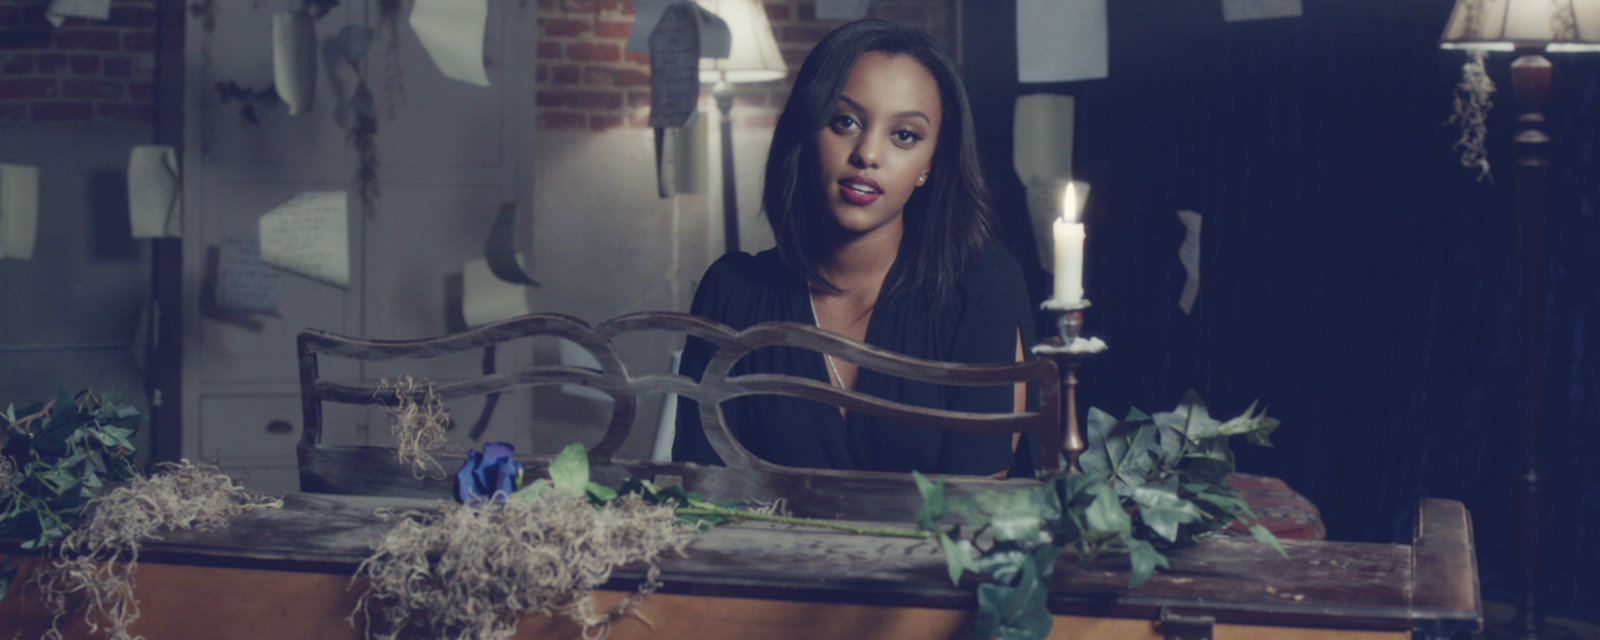 Ruth B. | Lost Boy music video | Dir: Emil Nava